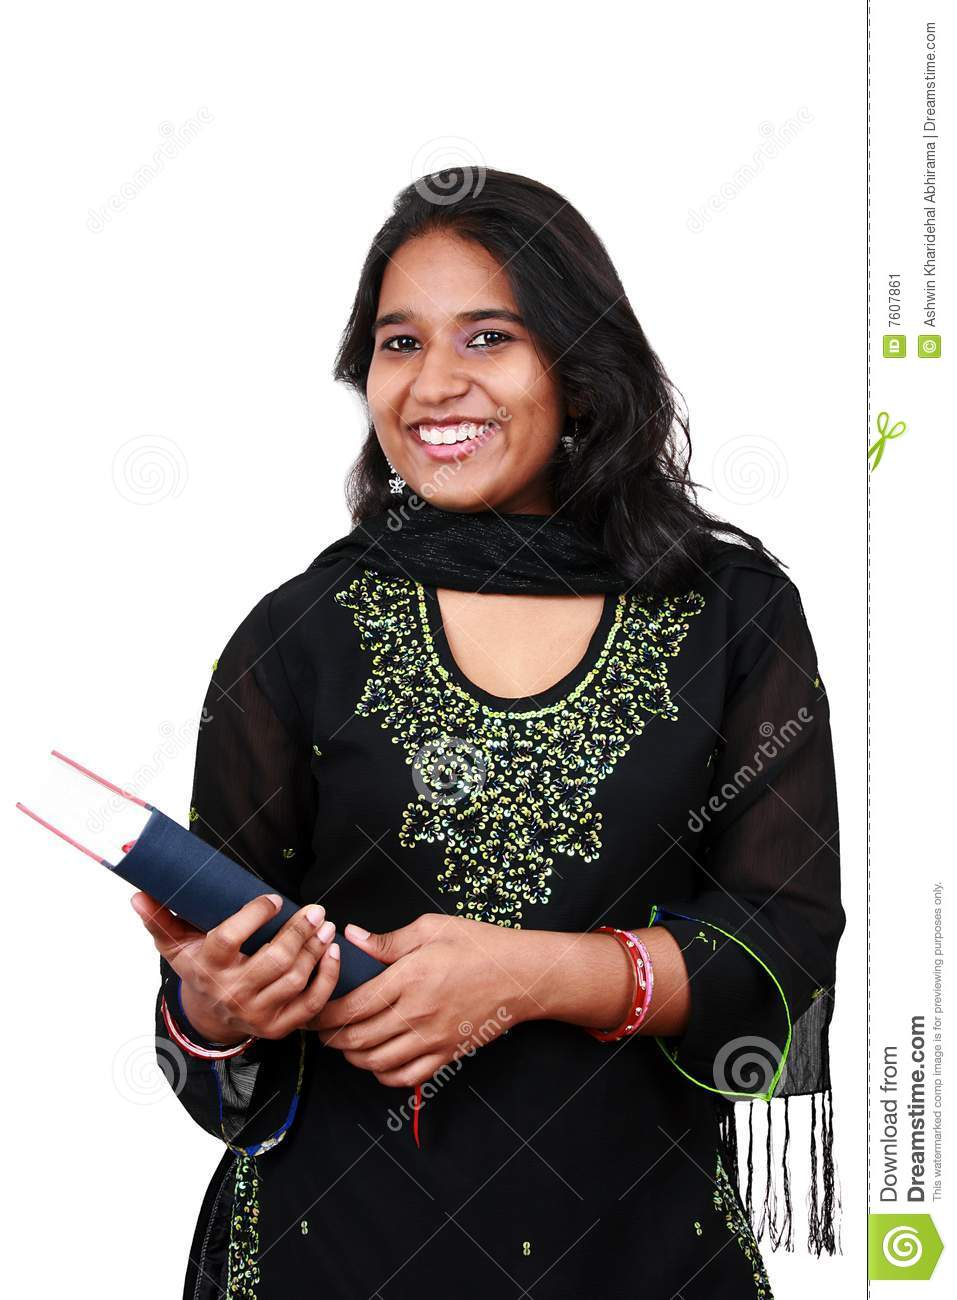 compare 2 essays for plagiarism Hinduism and buddhism, two old and sacred religions, are similar in many ways however, their differences are distinct enough to separate them entirely both are two major religions of the world and are widely practiced many people in india and nepal.